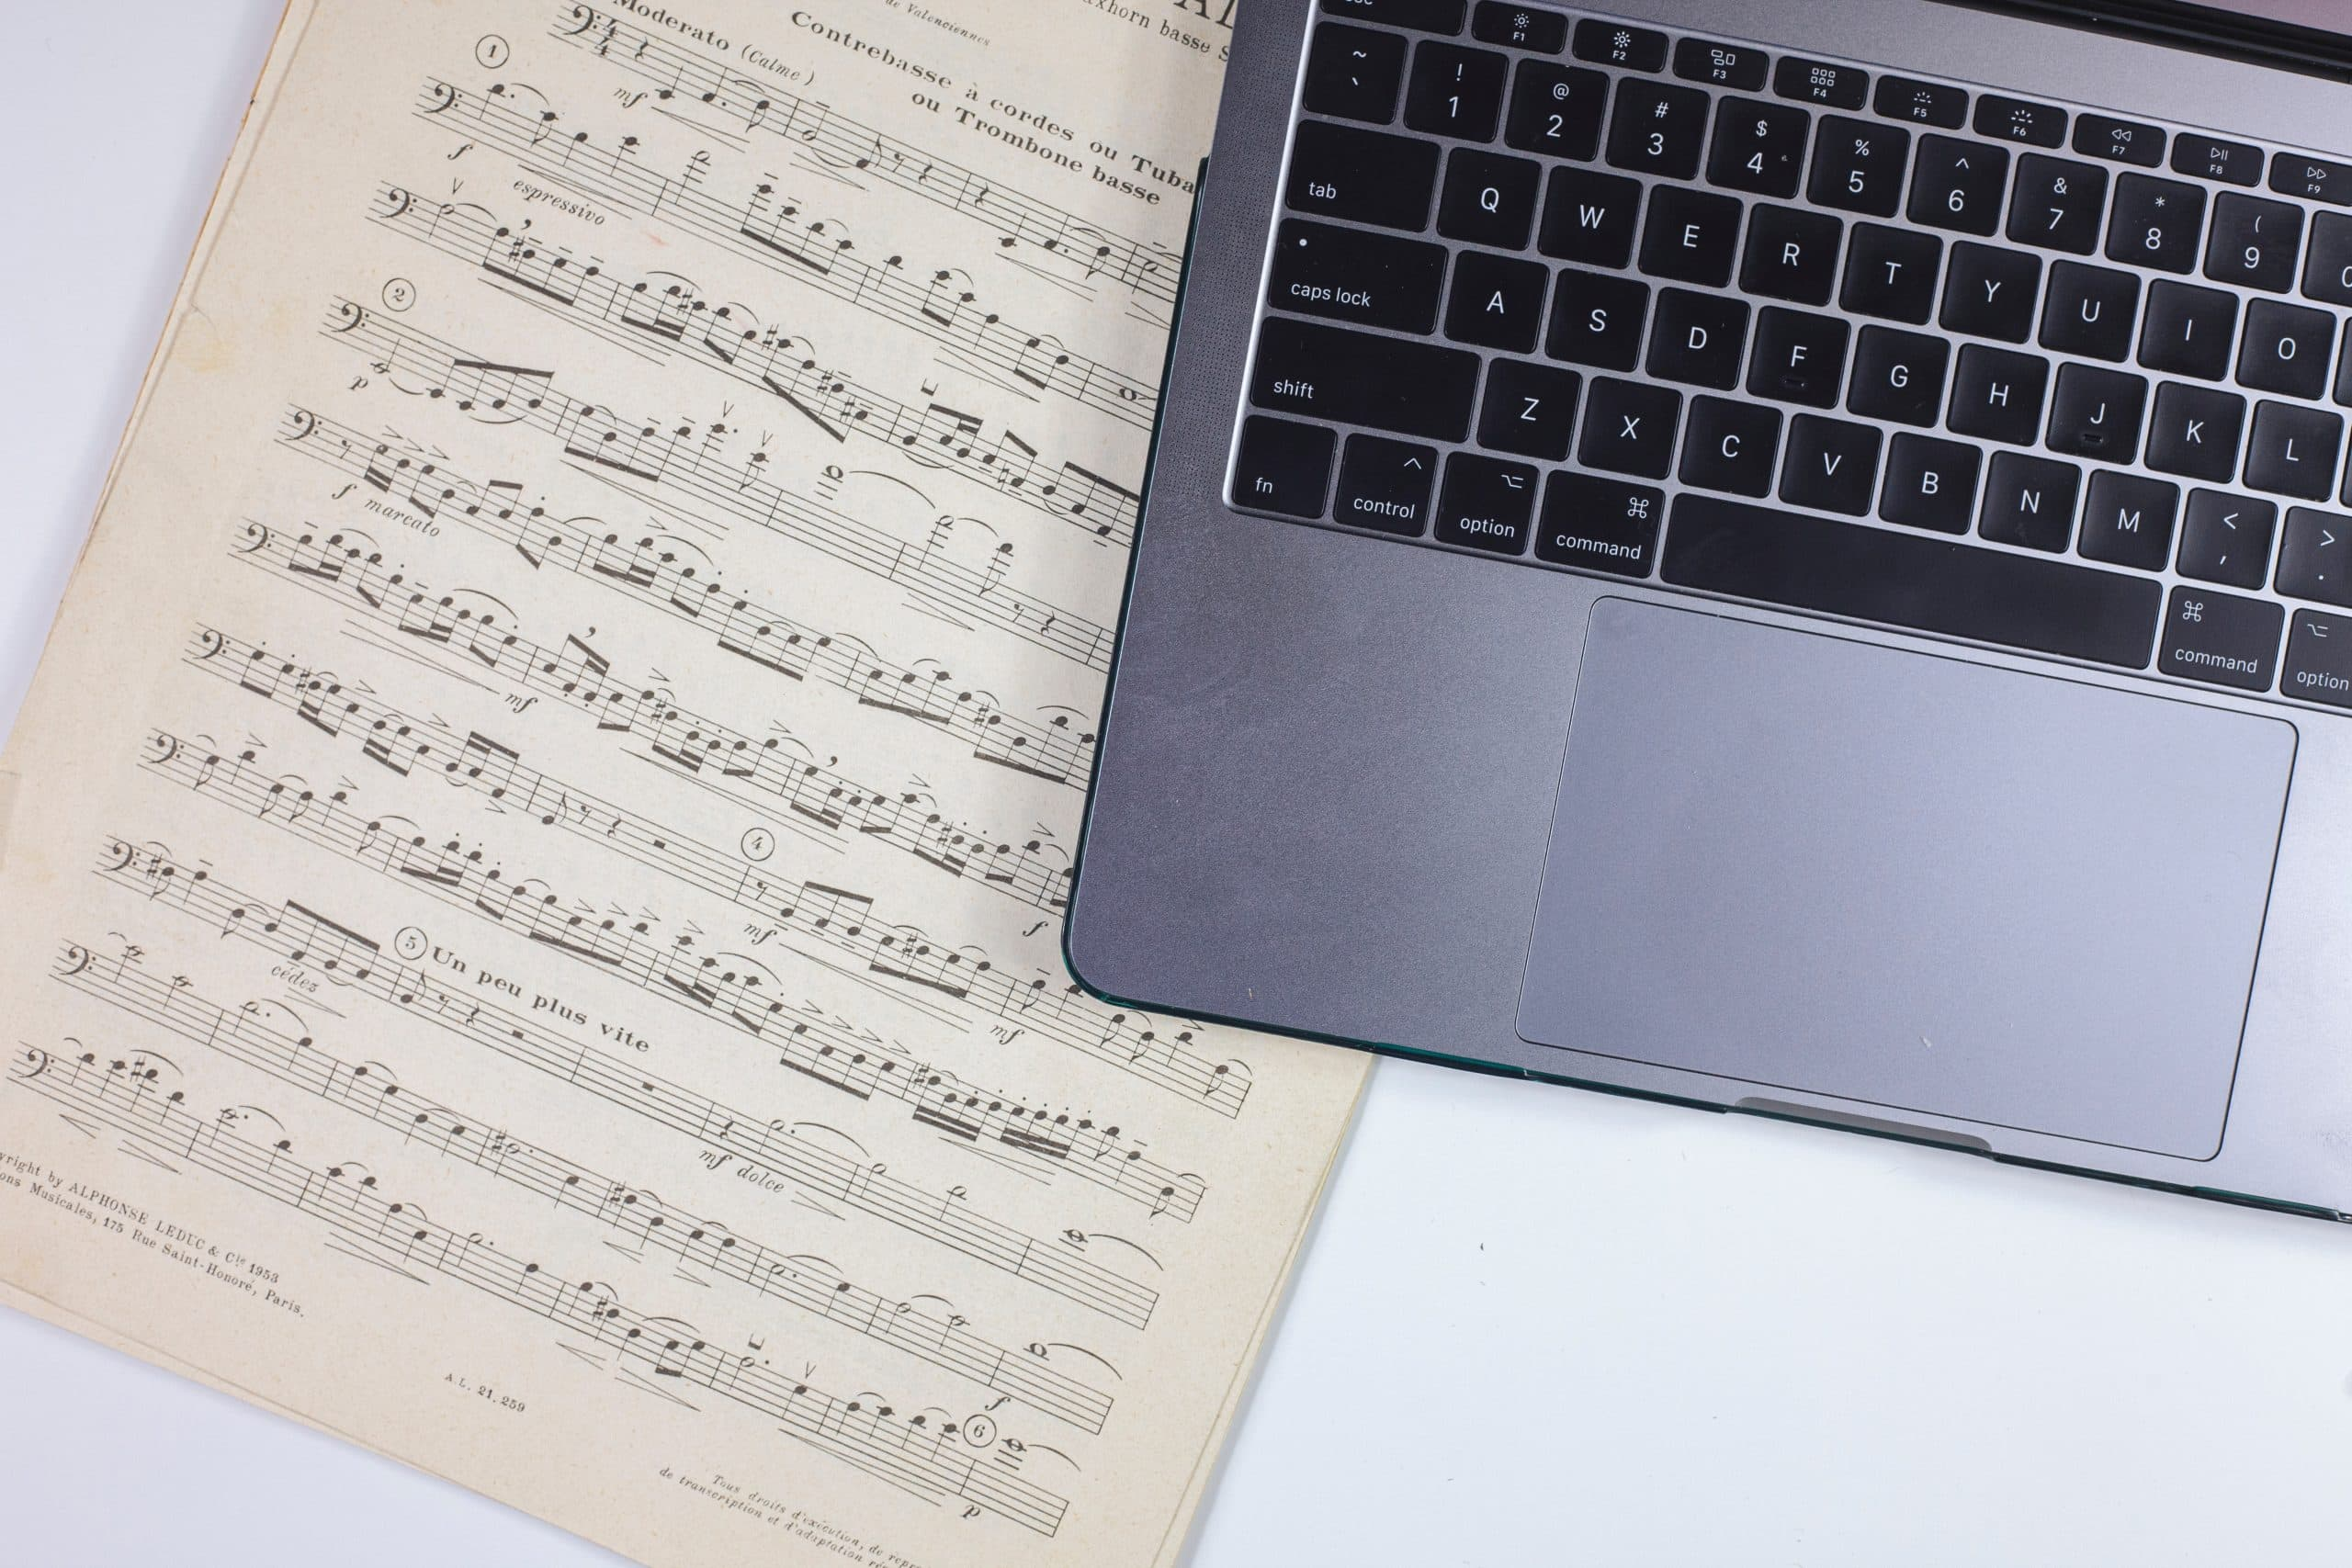 The Best Filmmaking Blogs in 2021 - An image of a musical score next to.a laptop